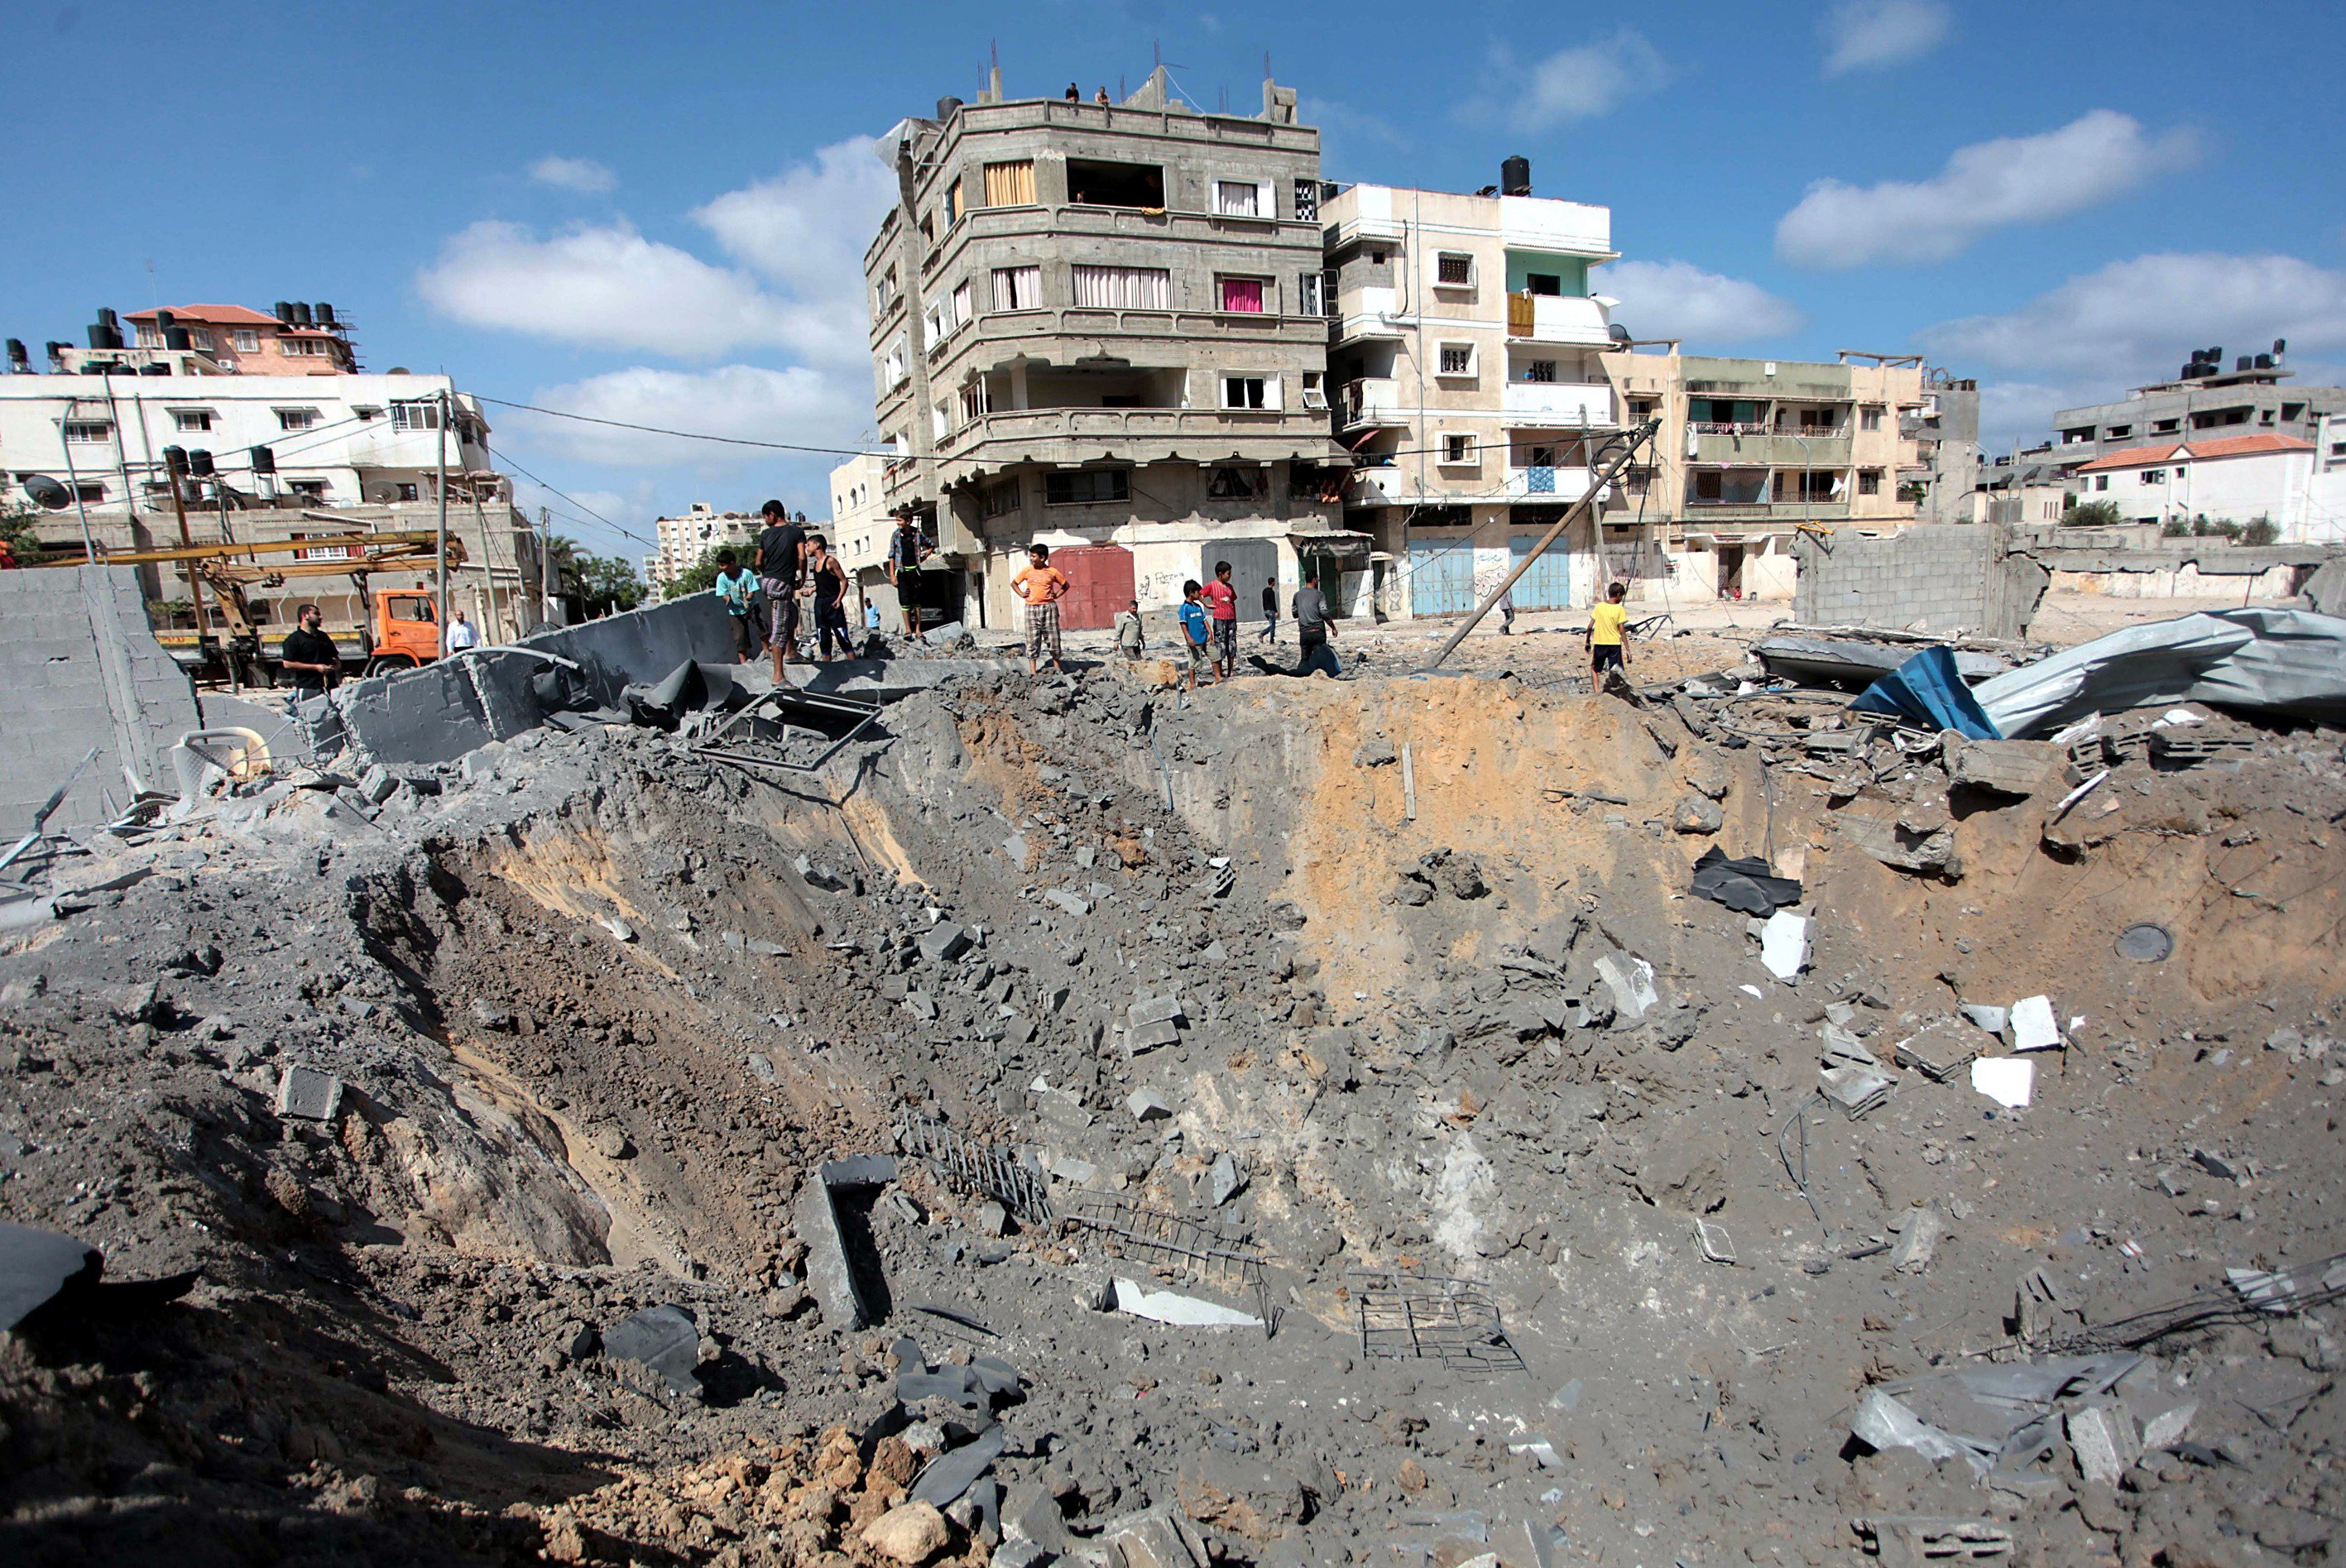 Palestinians inspect damaged areas following an overnight Israeli air strike, on July 3, 2014 in Gaza City, Gaza.